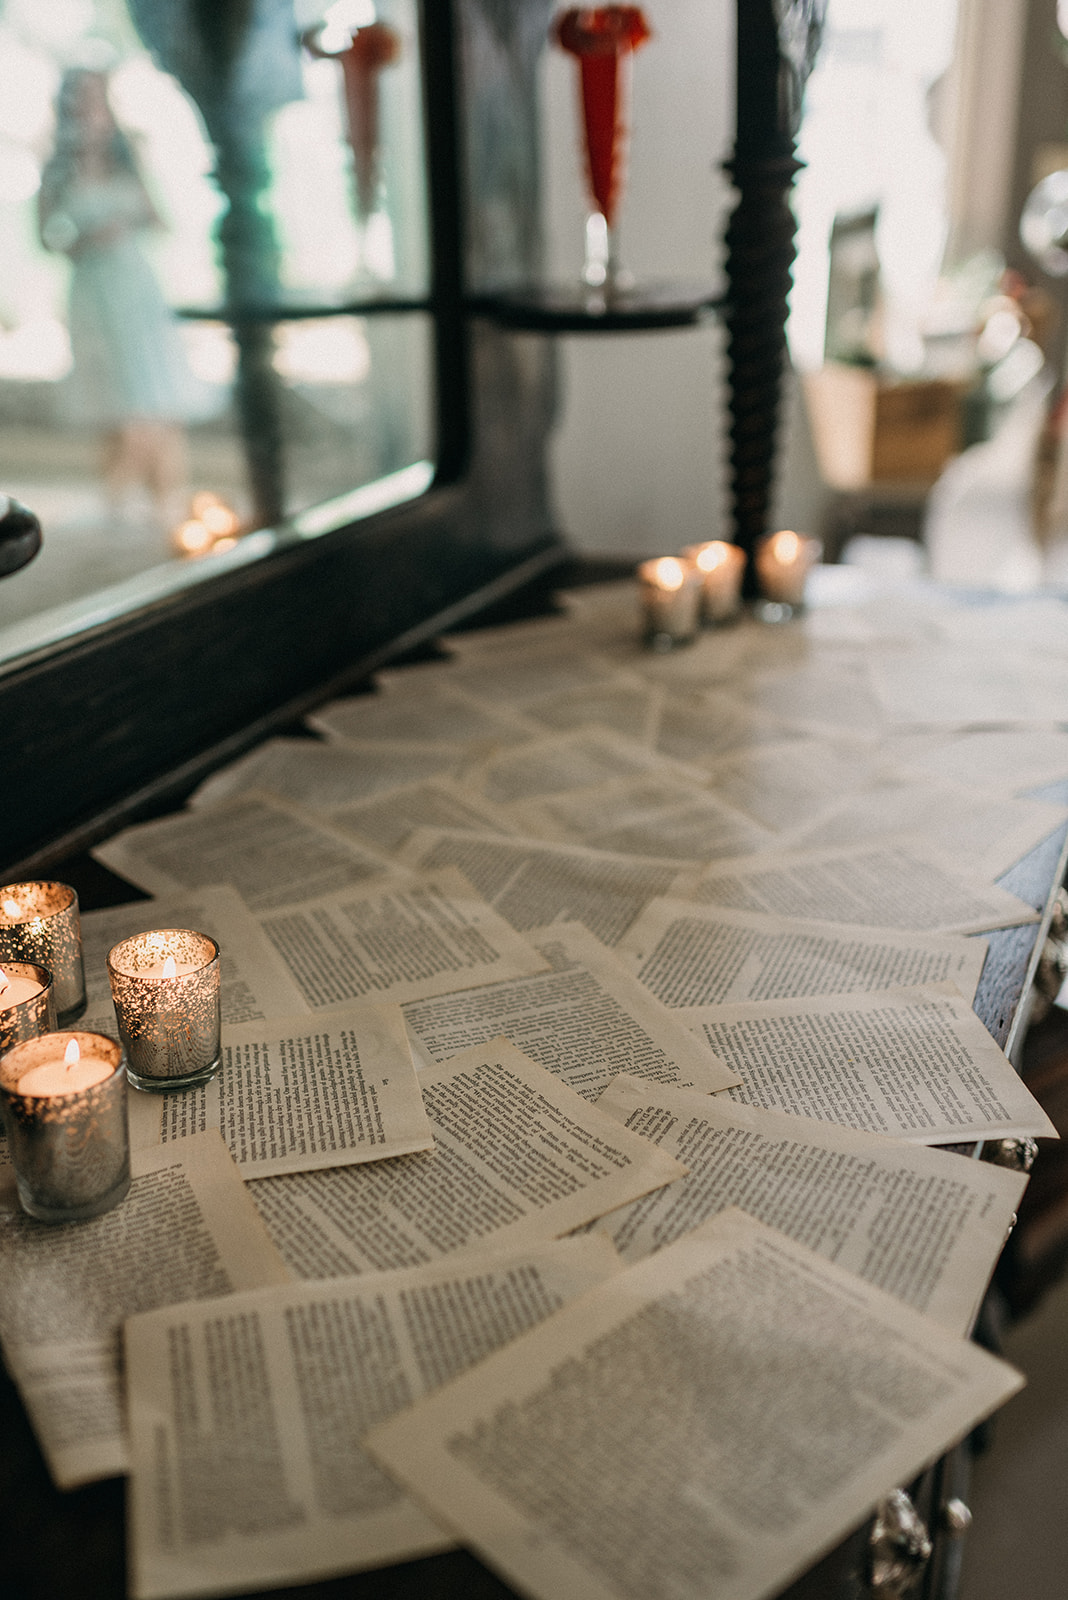 [image descriptions: A close up of the book page table runners and votive candles in silver candle holders.]